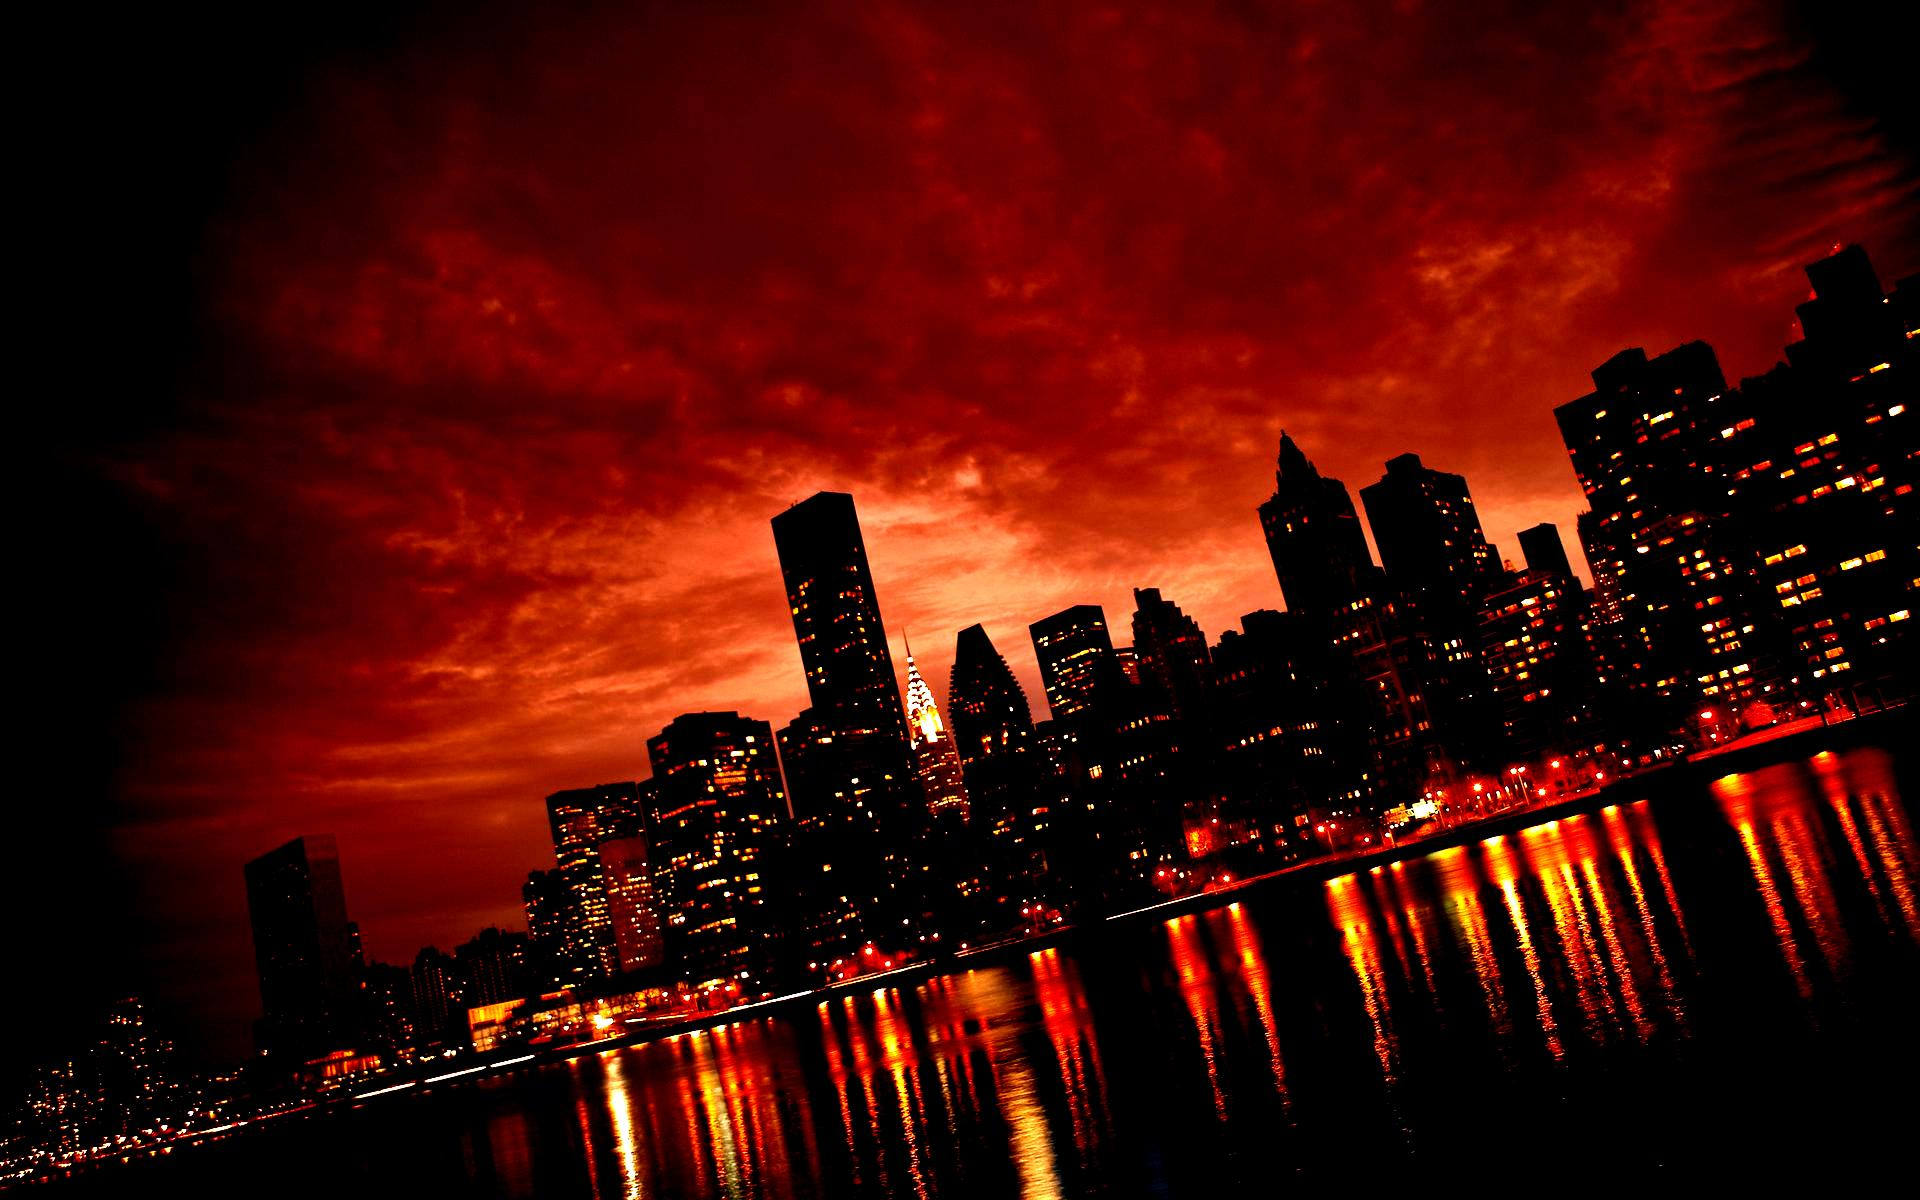 Download Red City Wallpaper Gallery